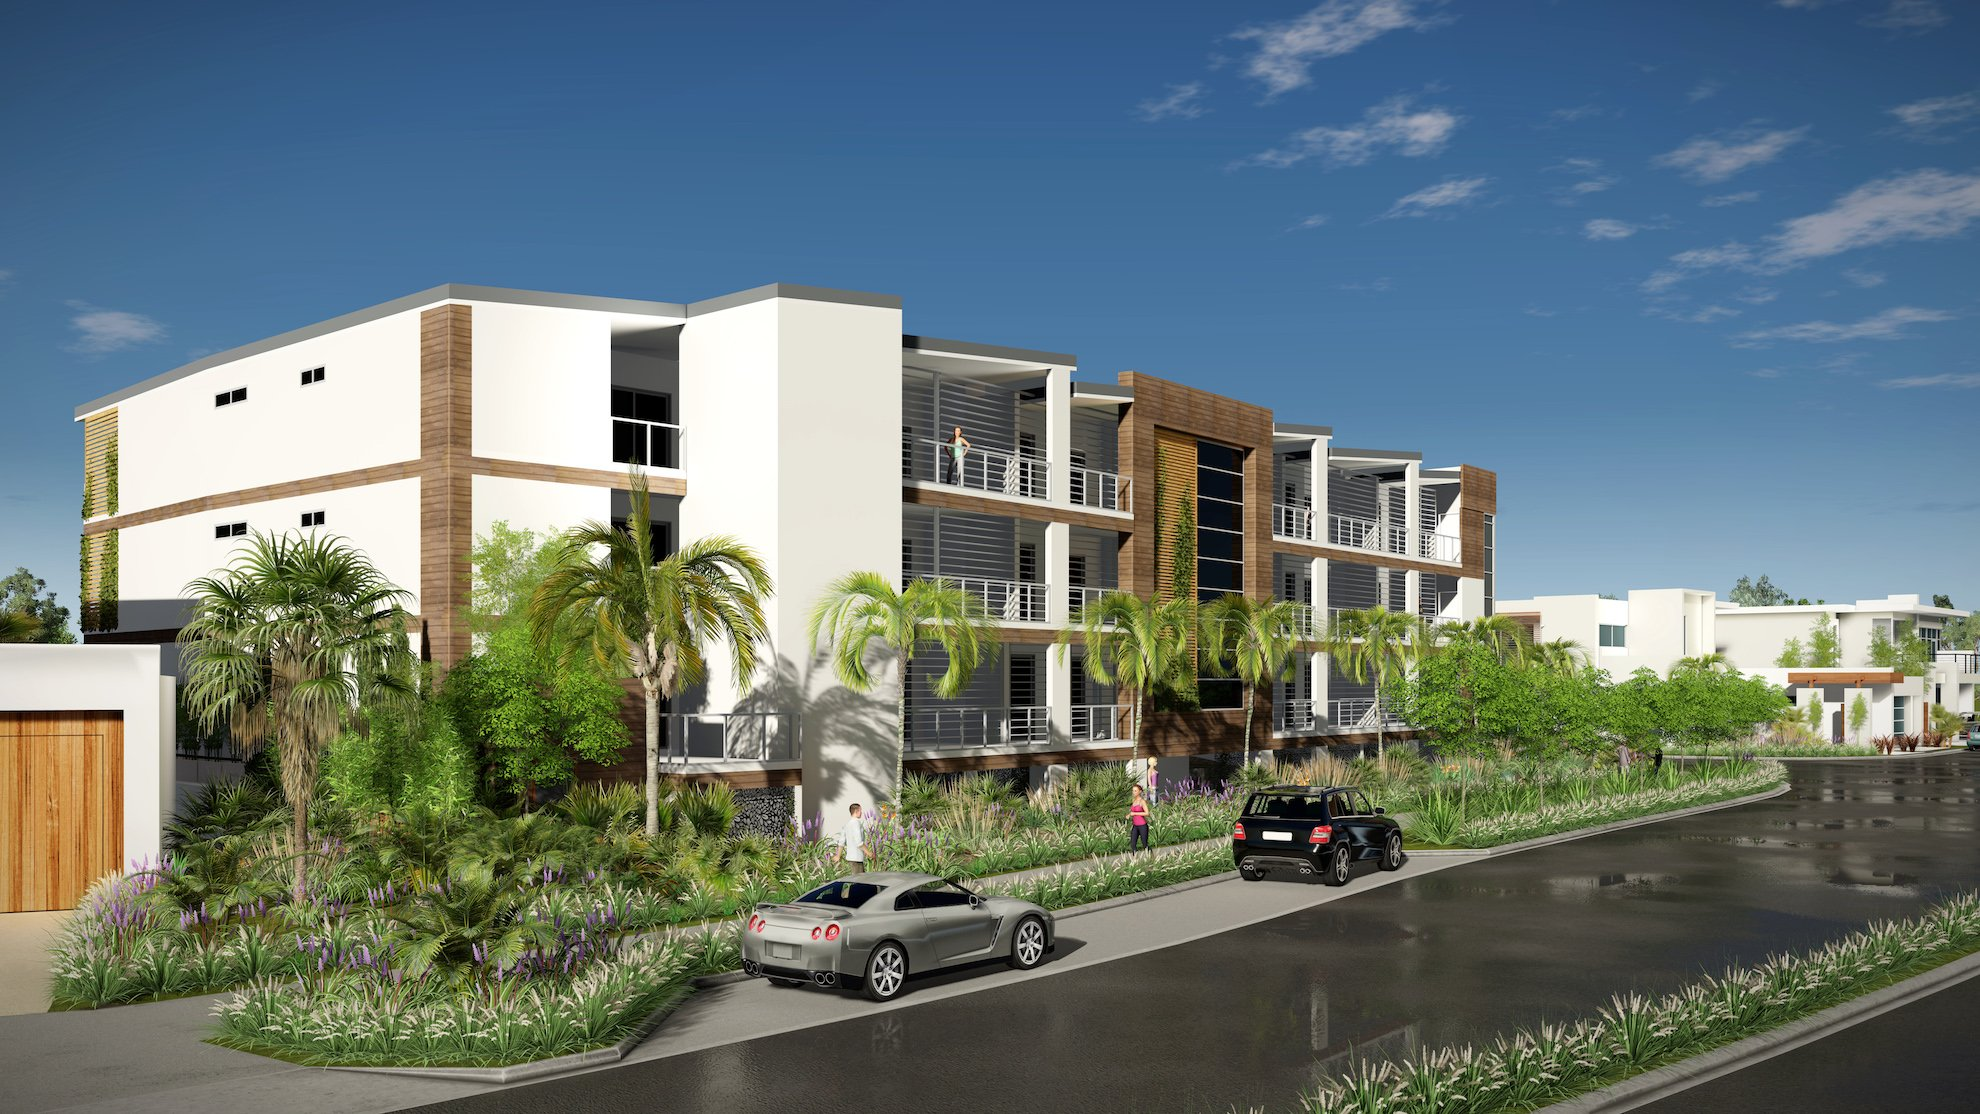 SUNSHINE COVE street project by mdesign, a building design practice that operates on the Sunshine Coast.